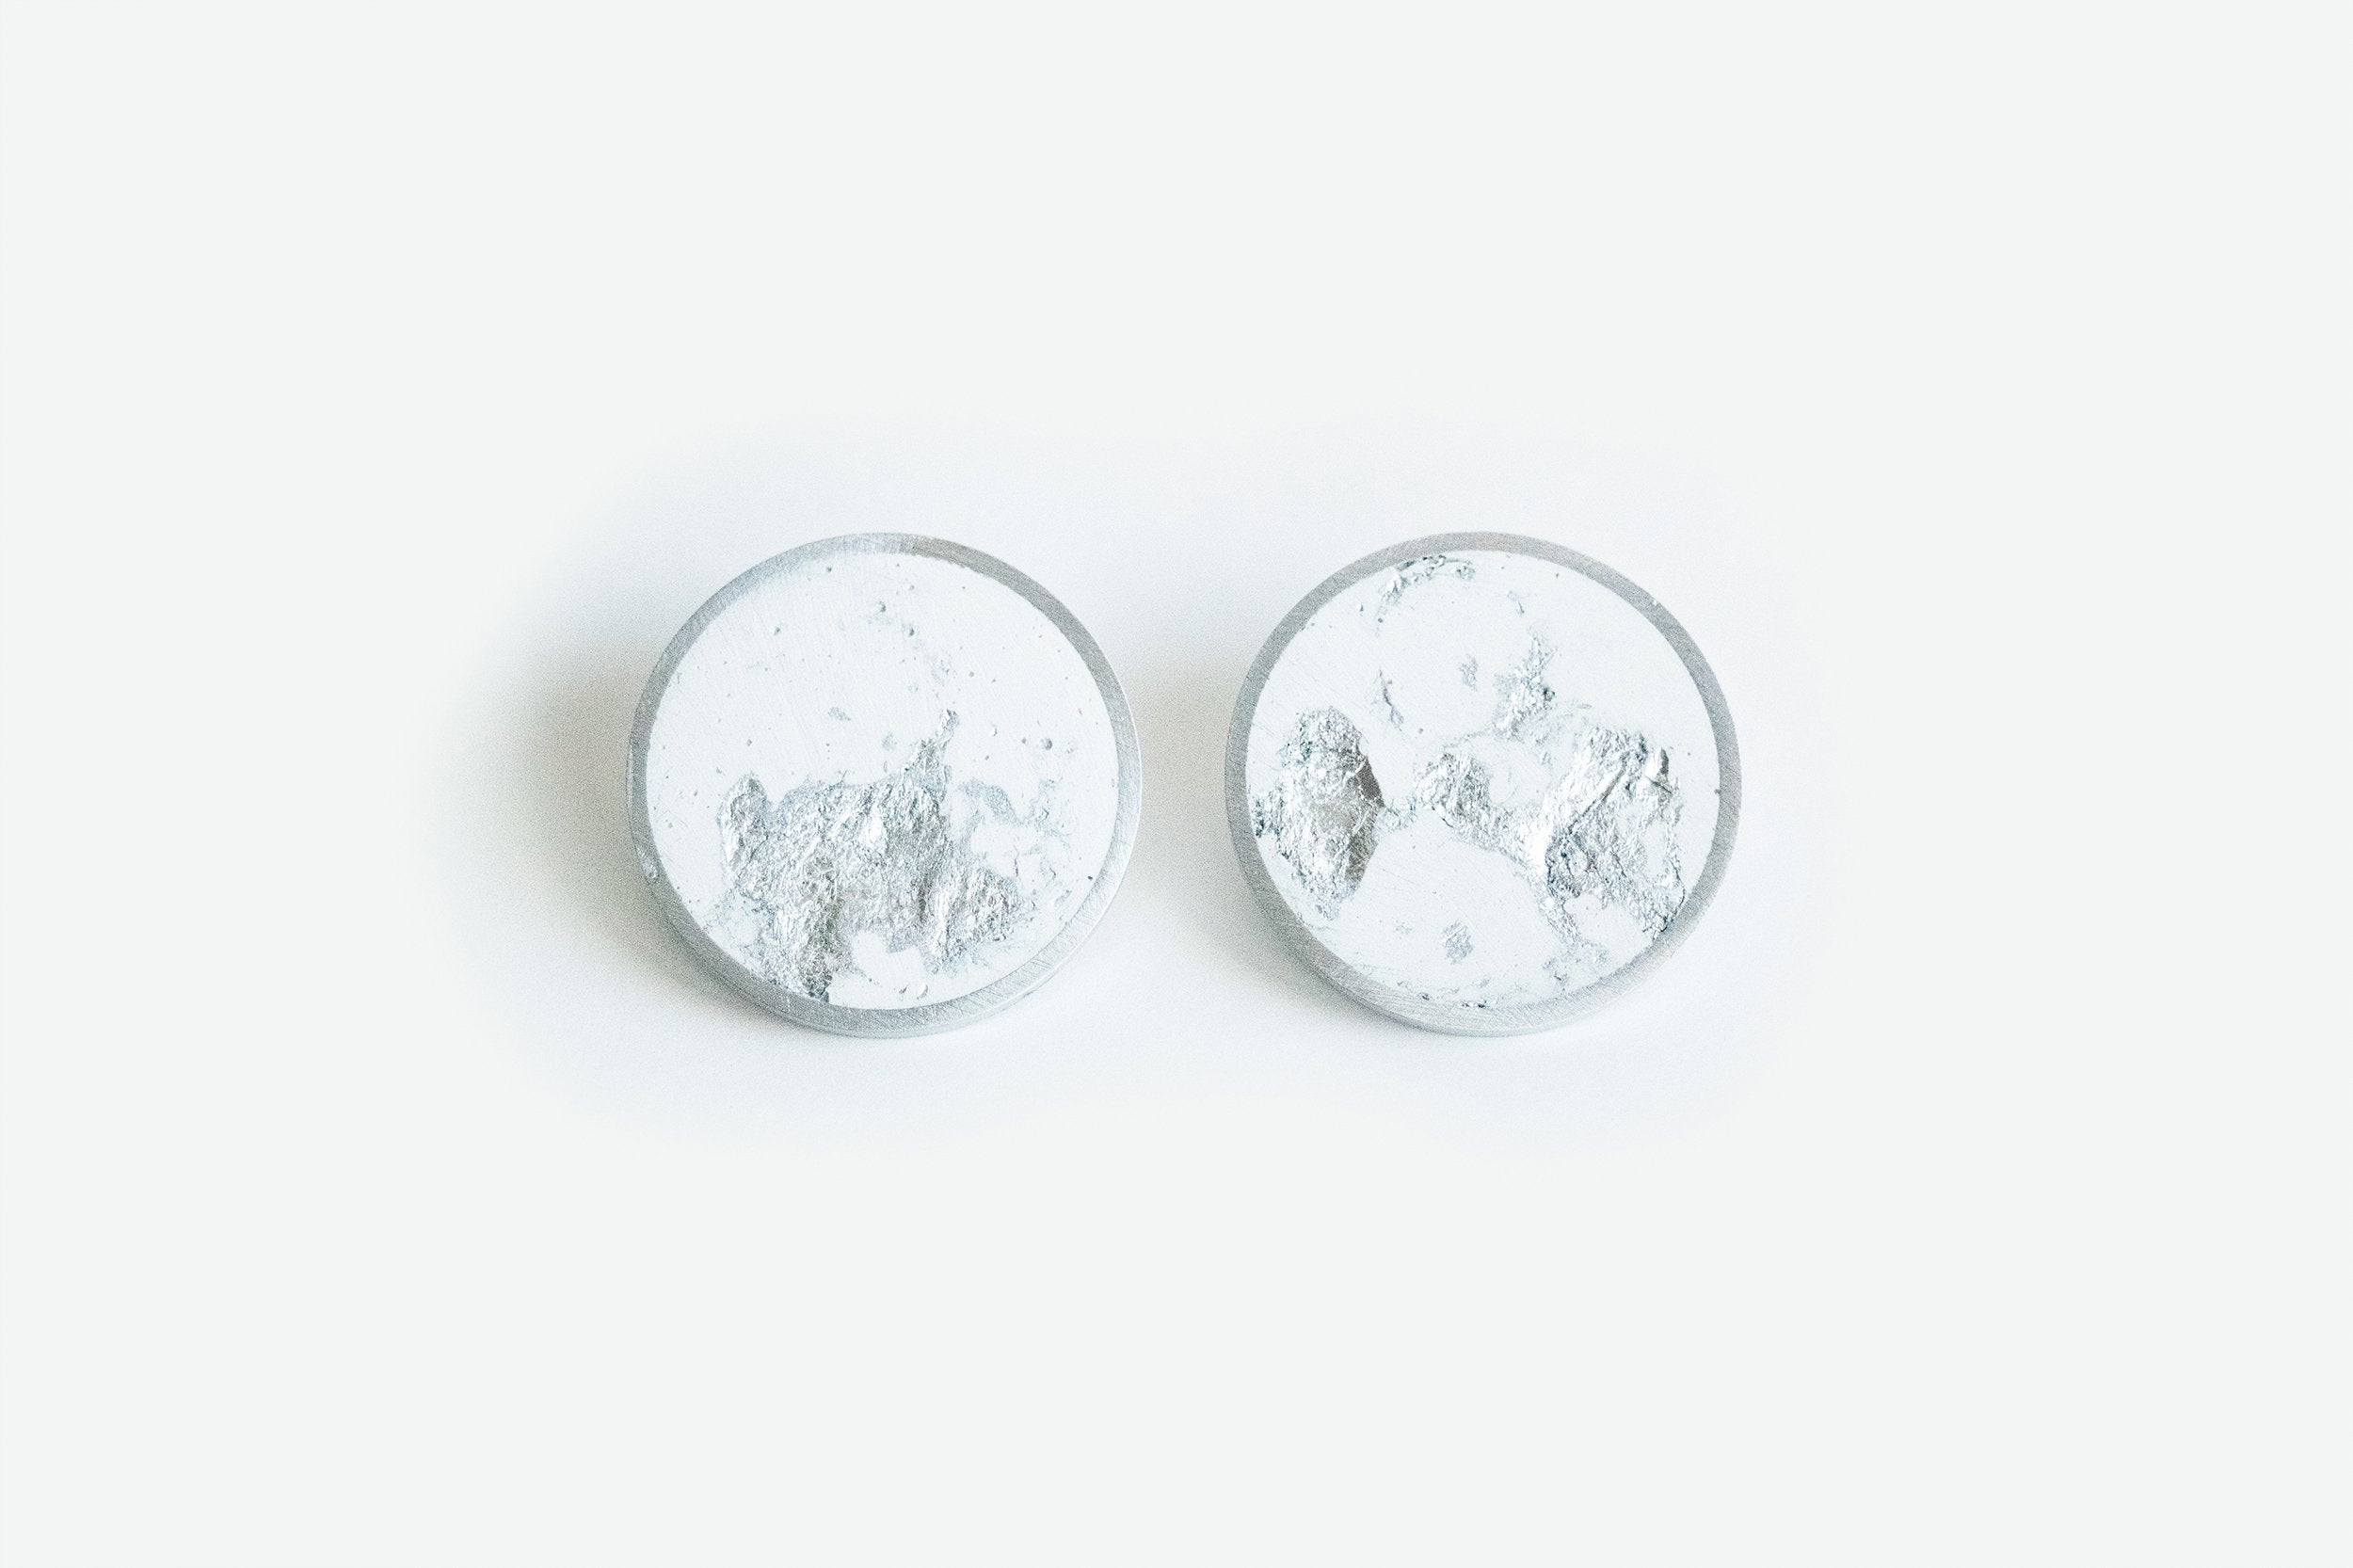 Concrete Framed Earrings - Large Stud